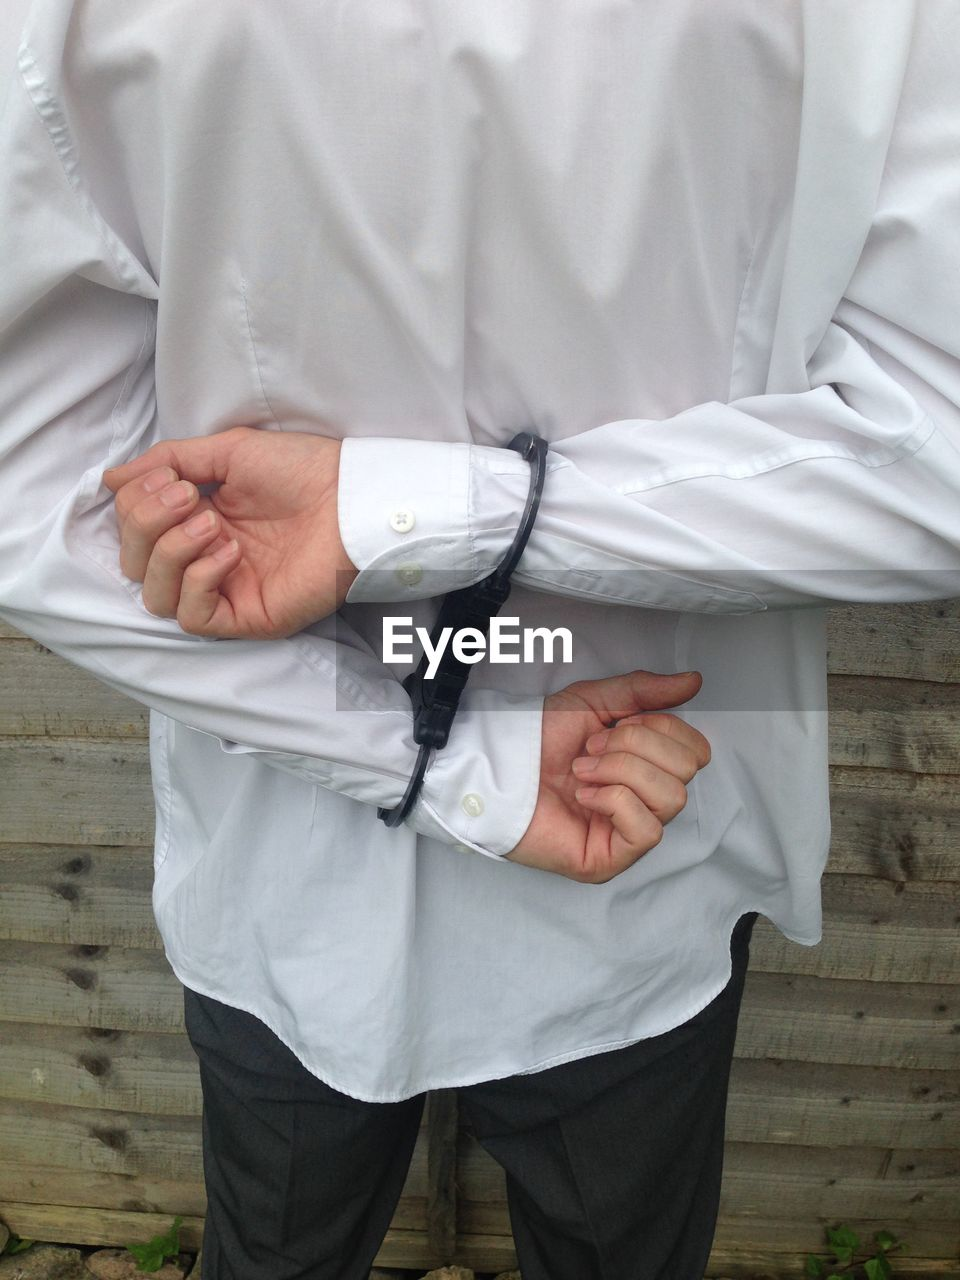 Midsection of man wearing handcuffs